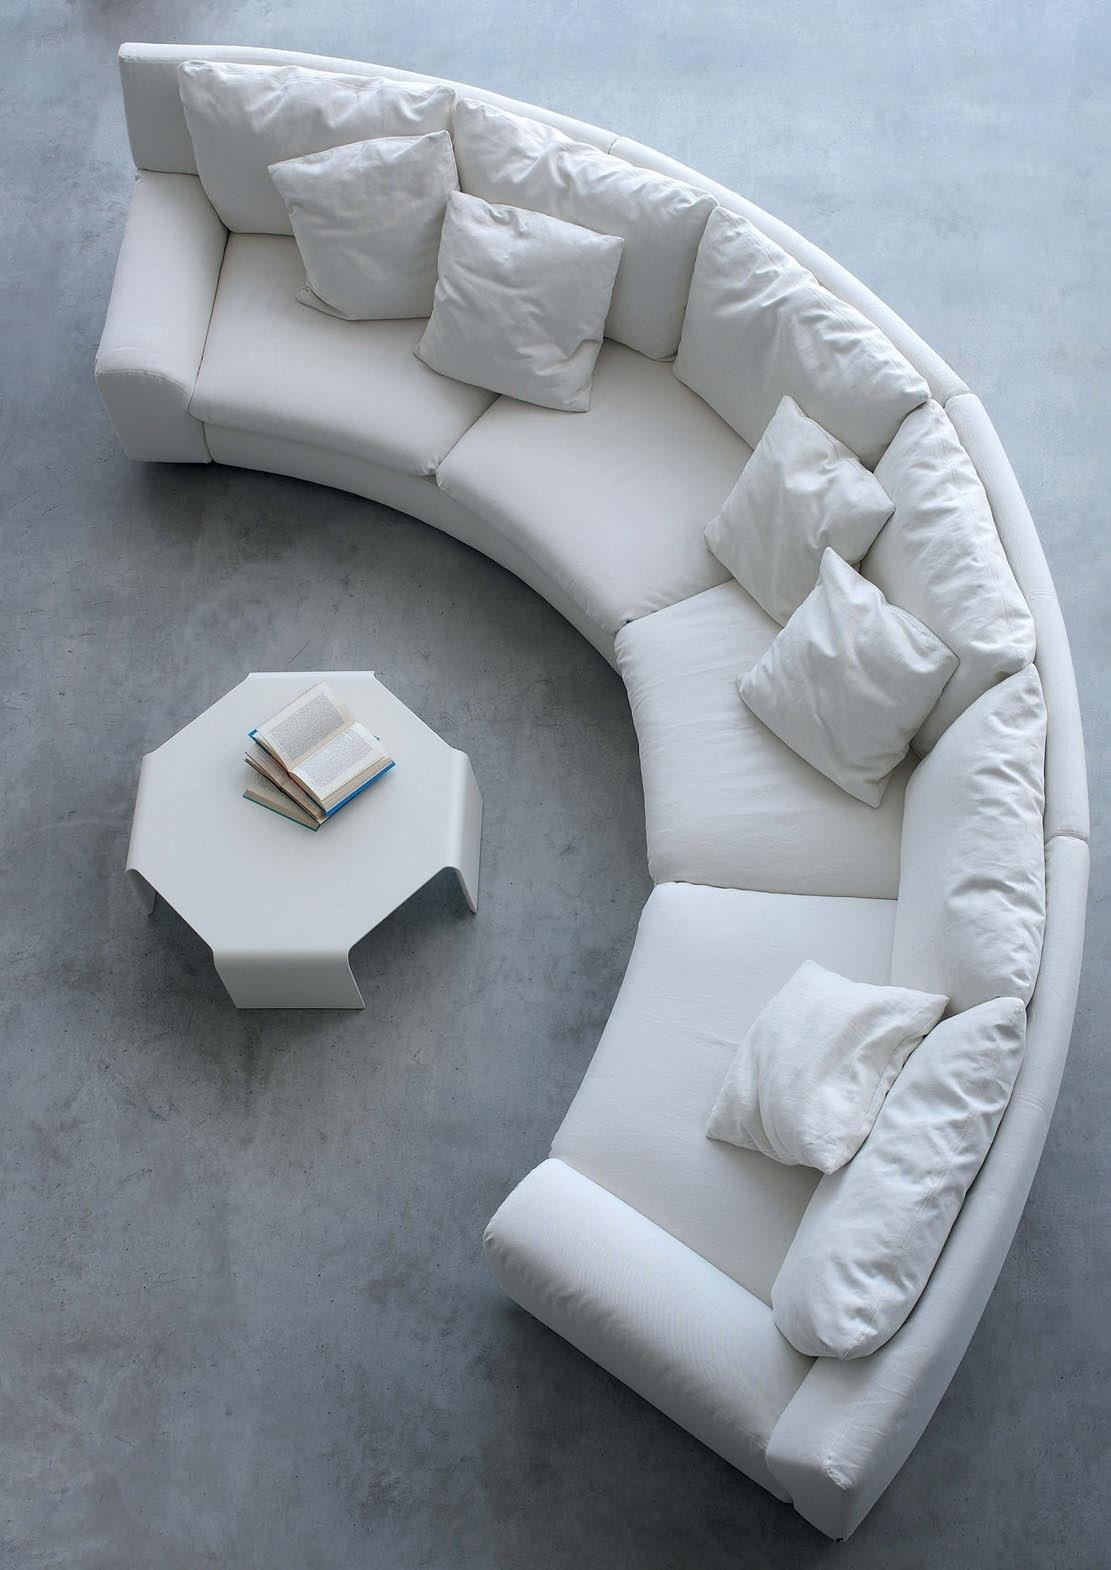 The Semicircular Sofa In Fabric Ben Ben, Arflex – Luxury Furniture Mr Inside Semicircular Sofa (Image 20 of 20)